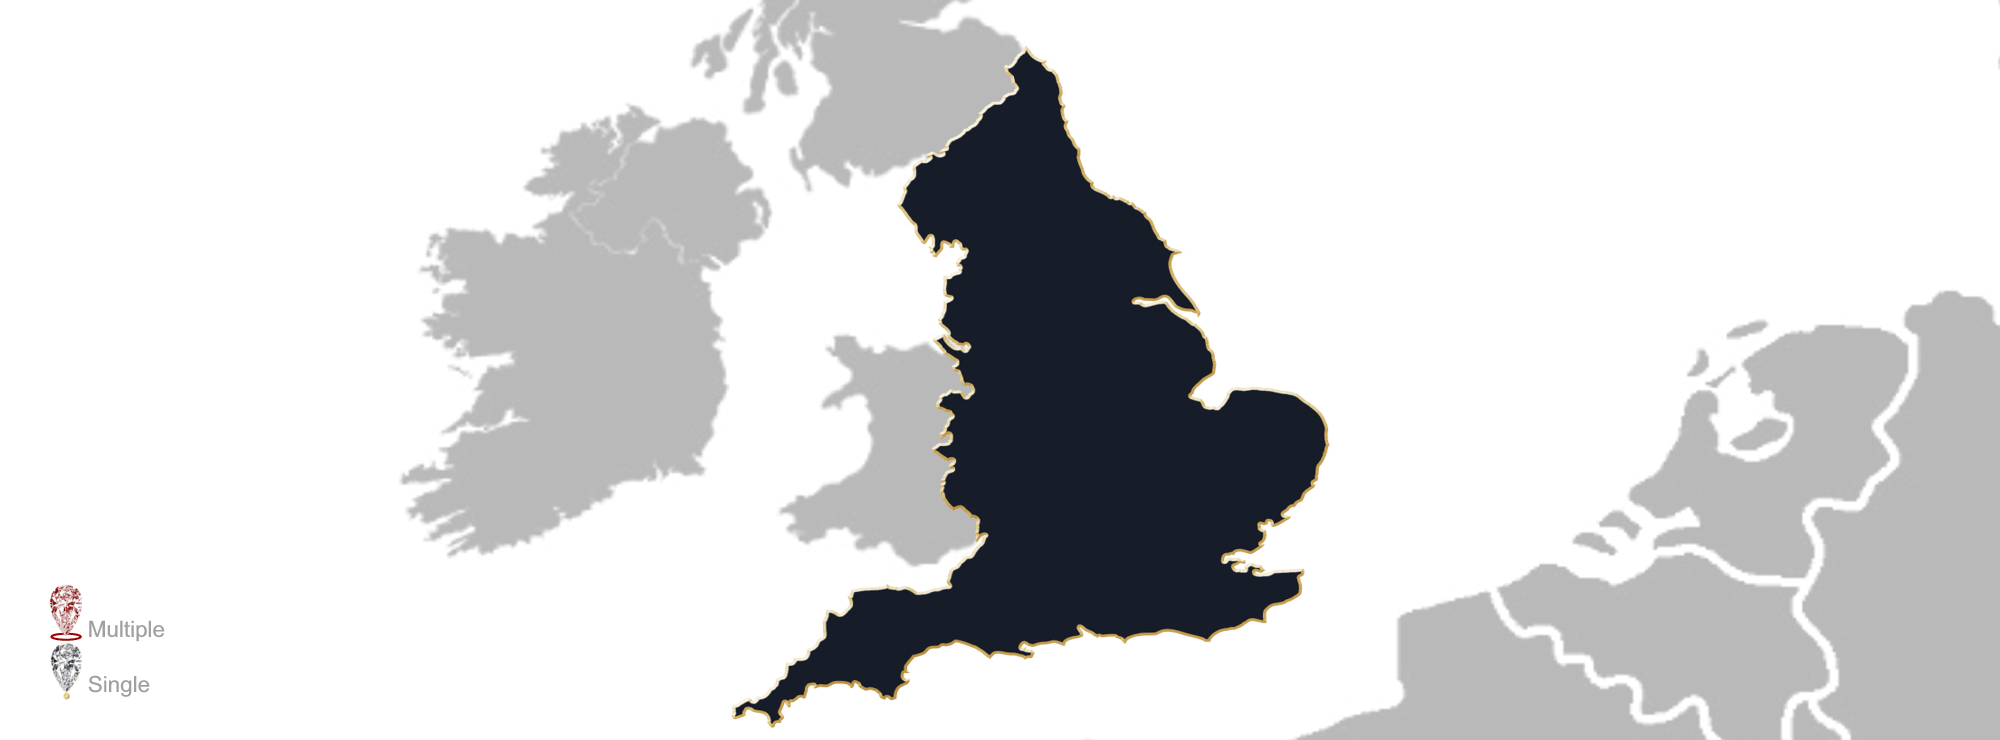 Map showing the location of jewellery valuers in England